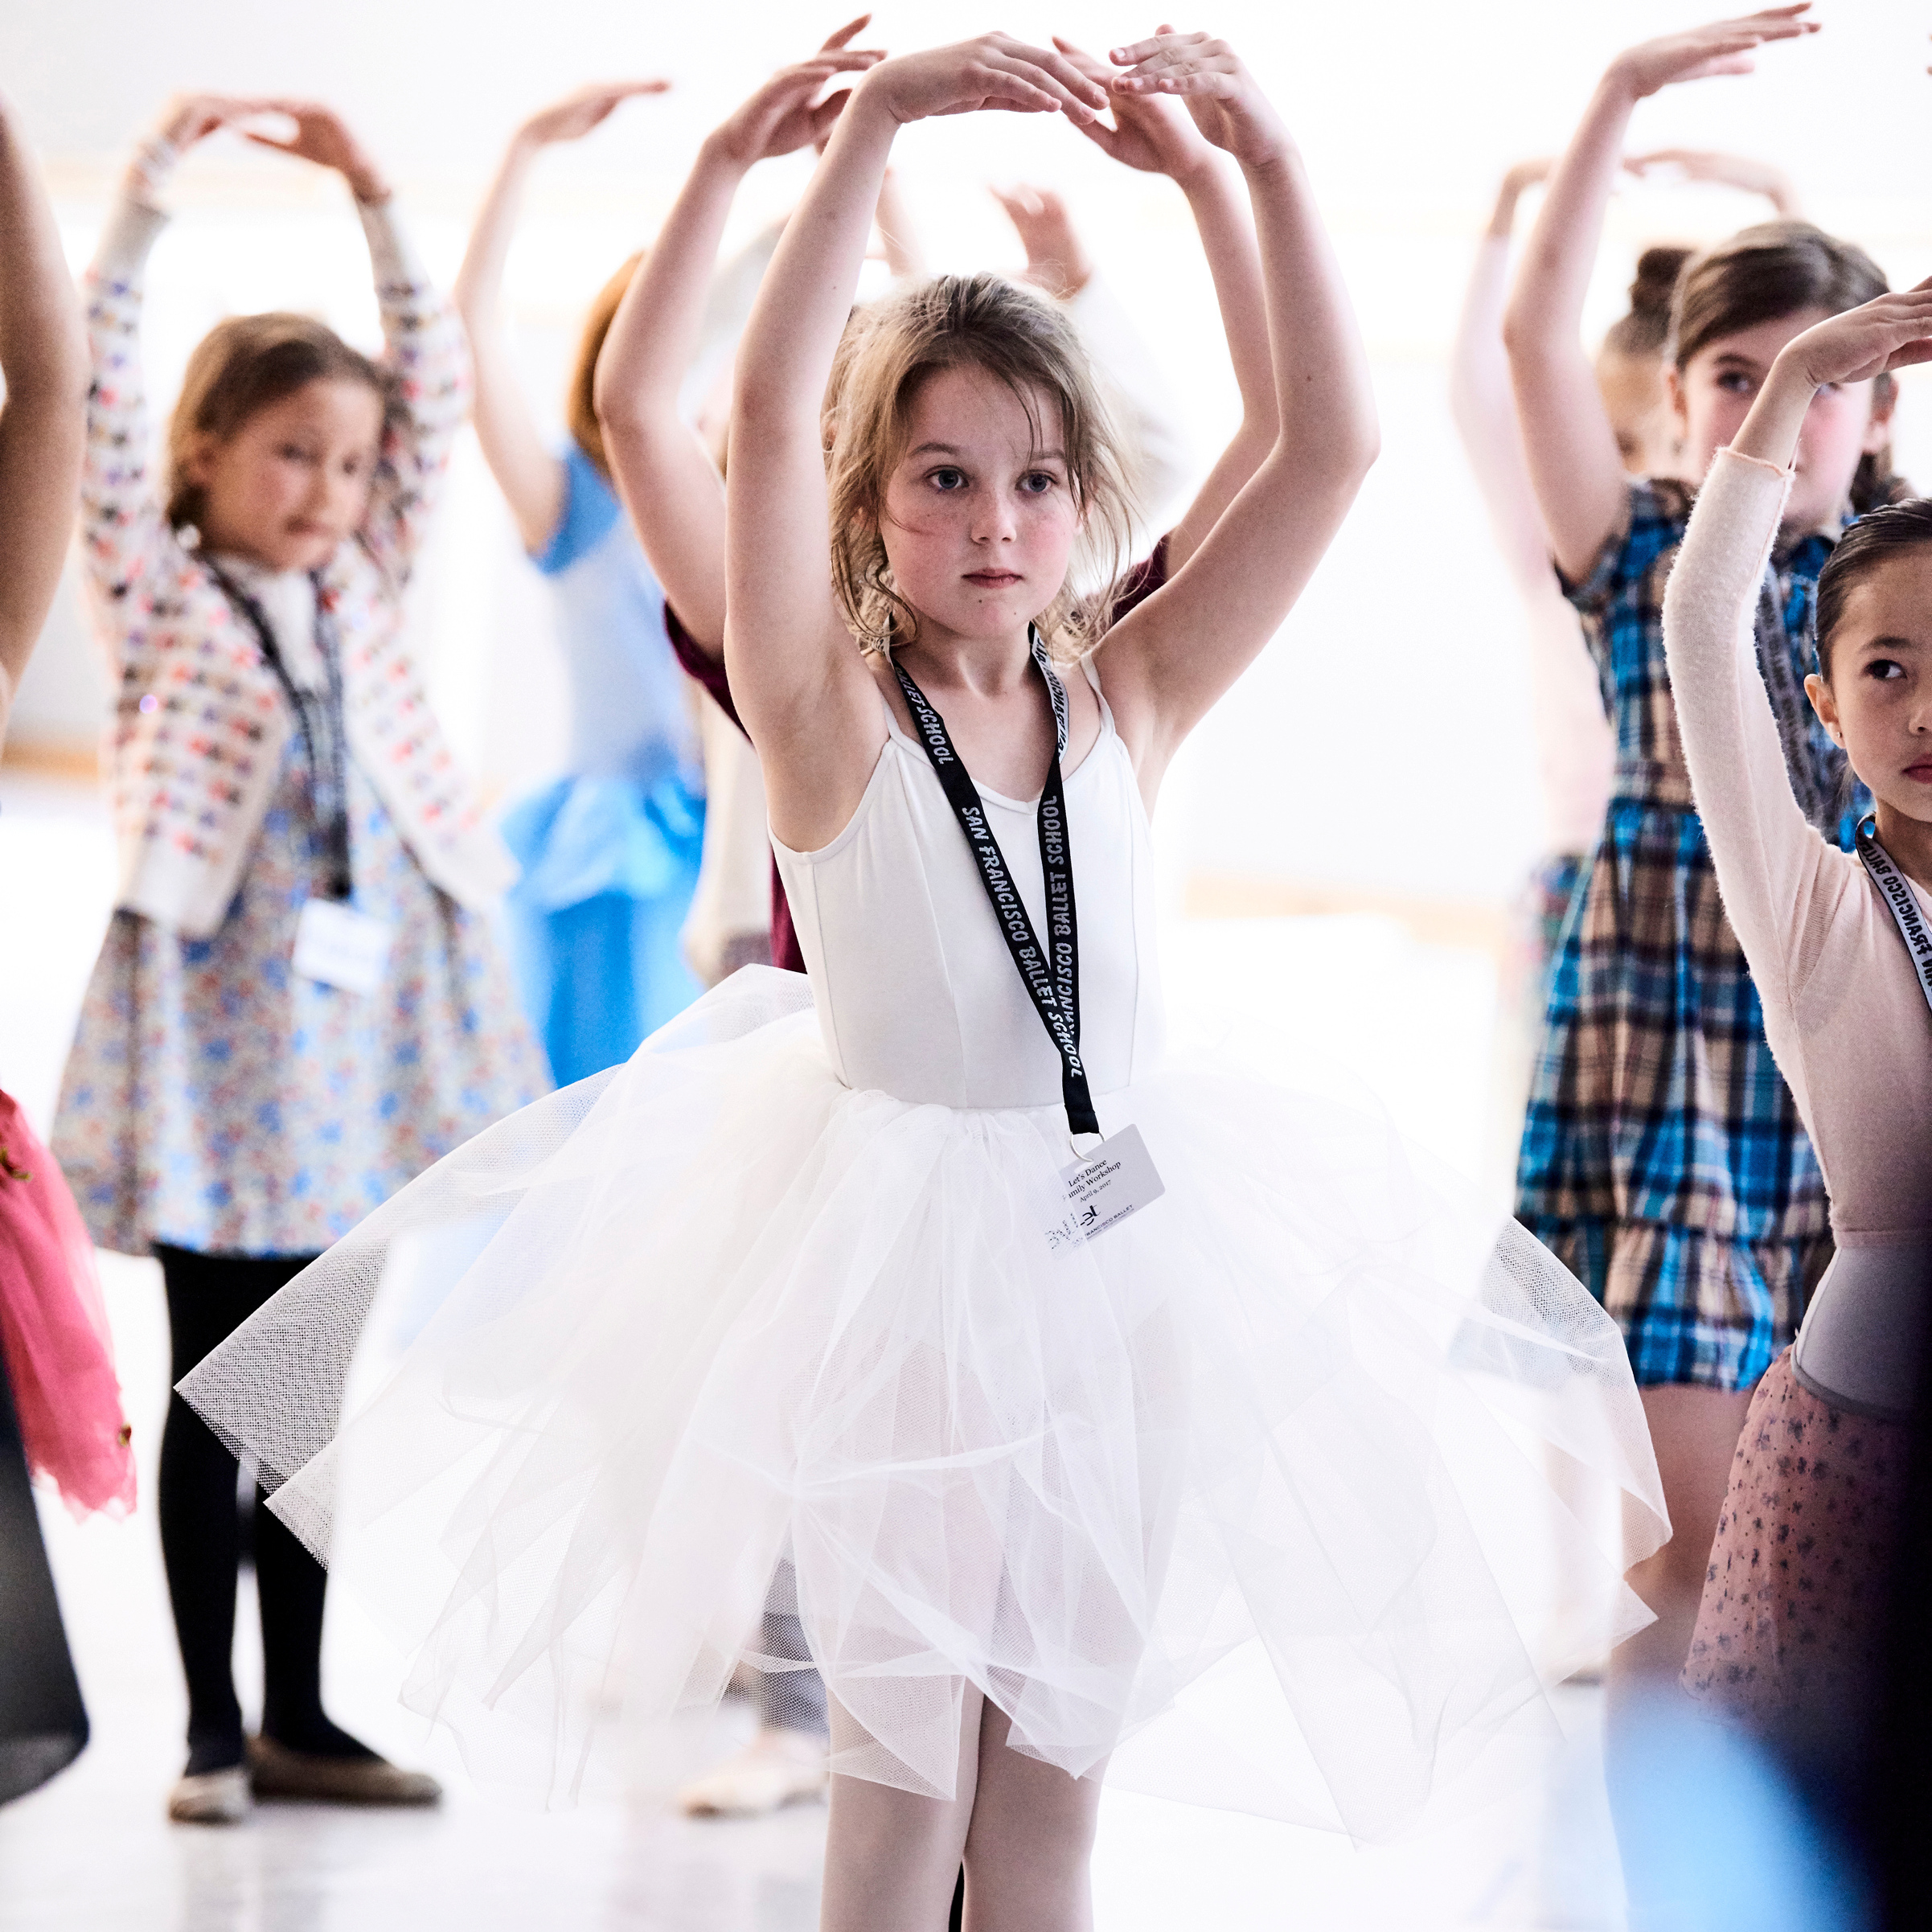 SF Ballet's Let's Dance Family Workshop. (© Erik Tomasson)